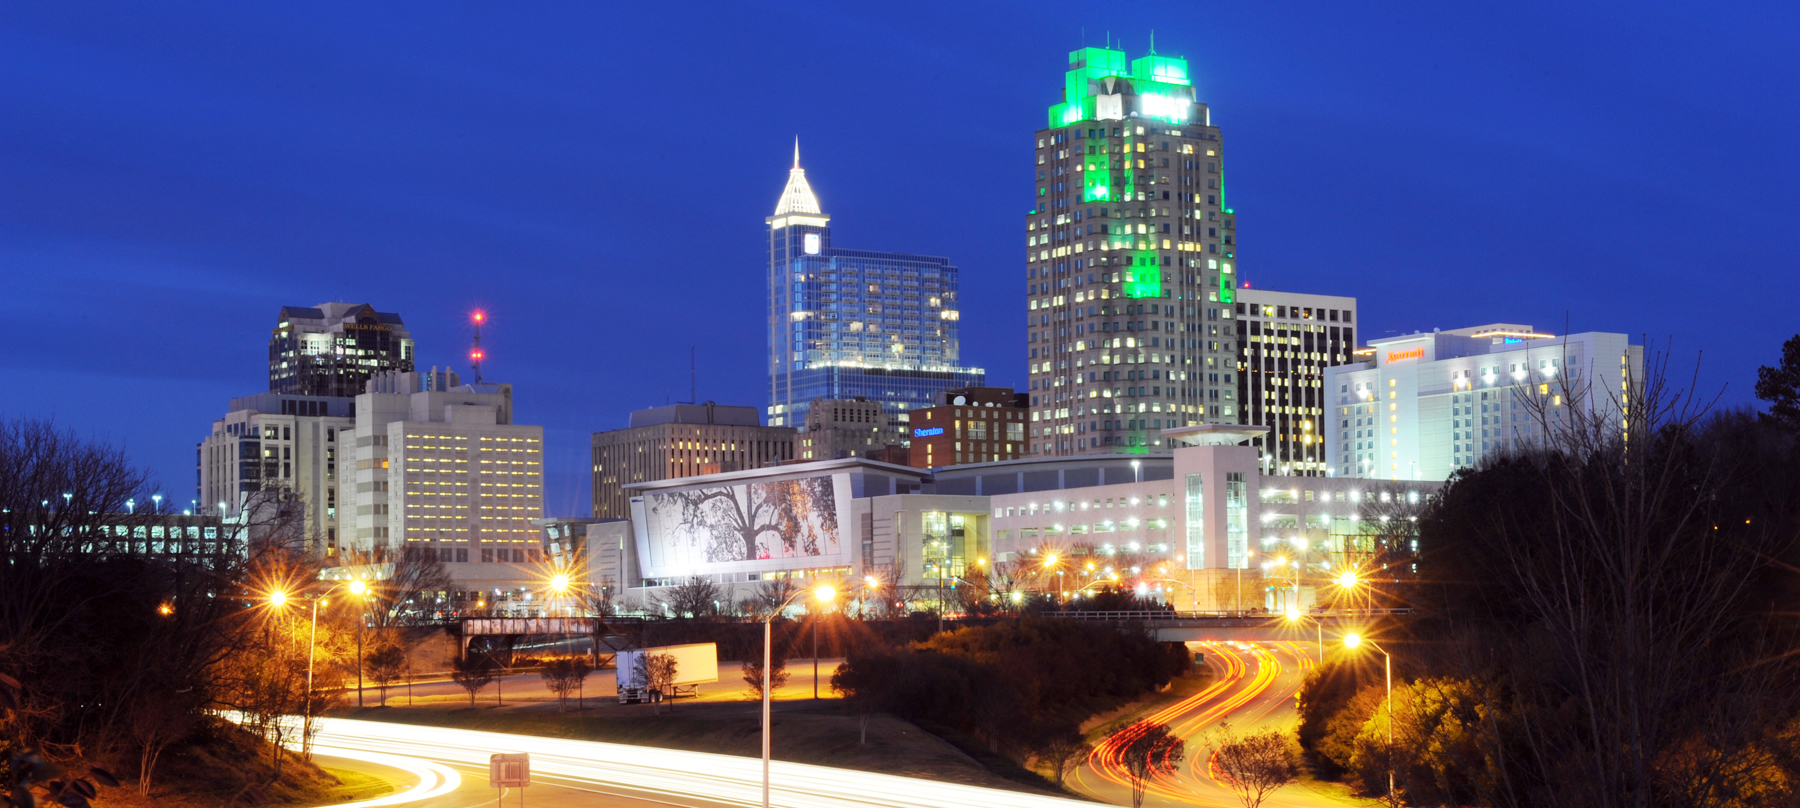 DowntownRaleigh2